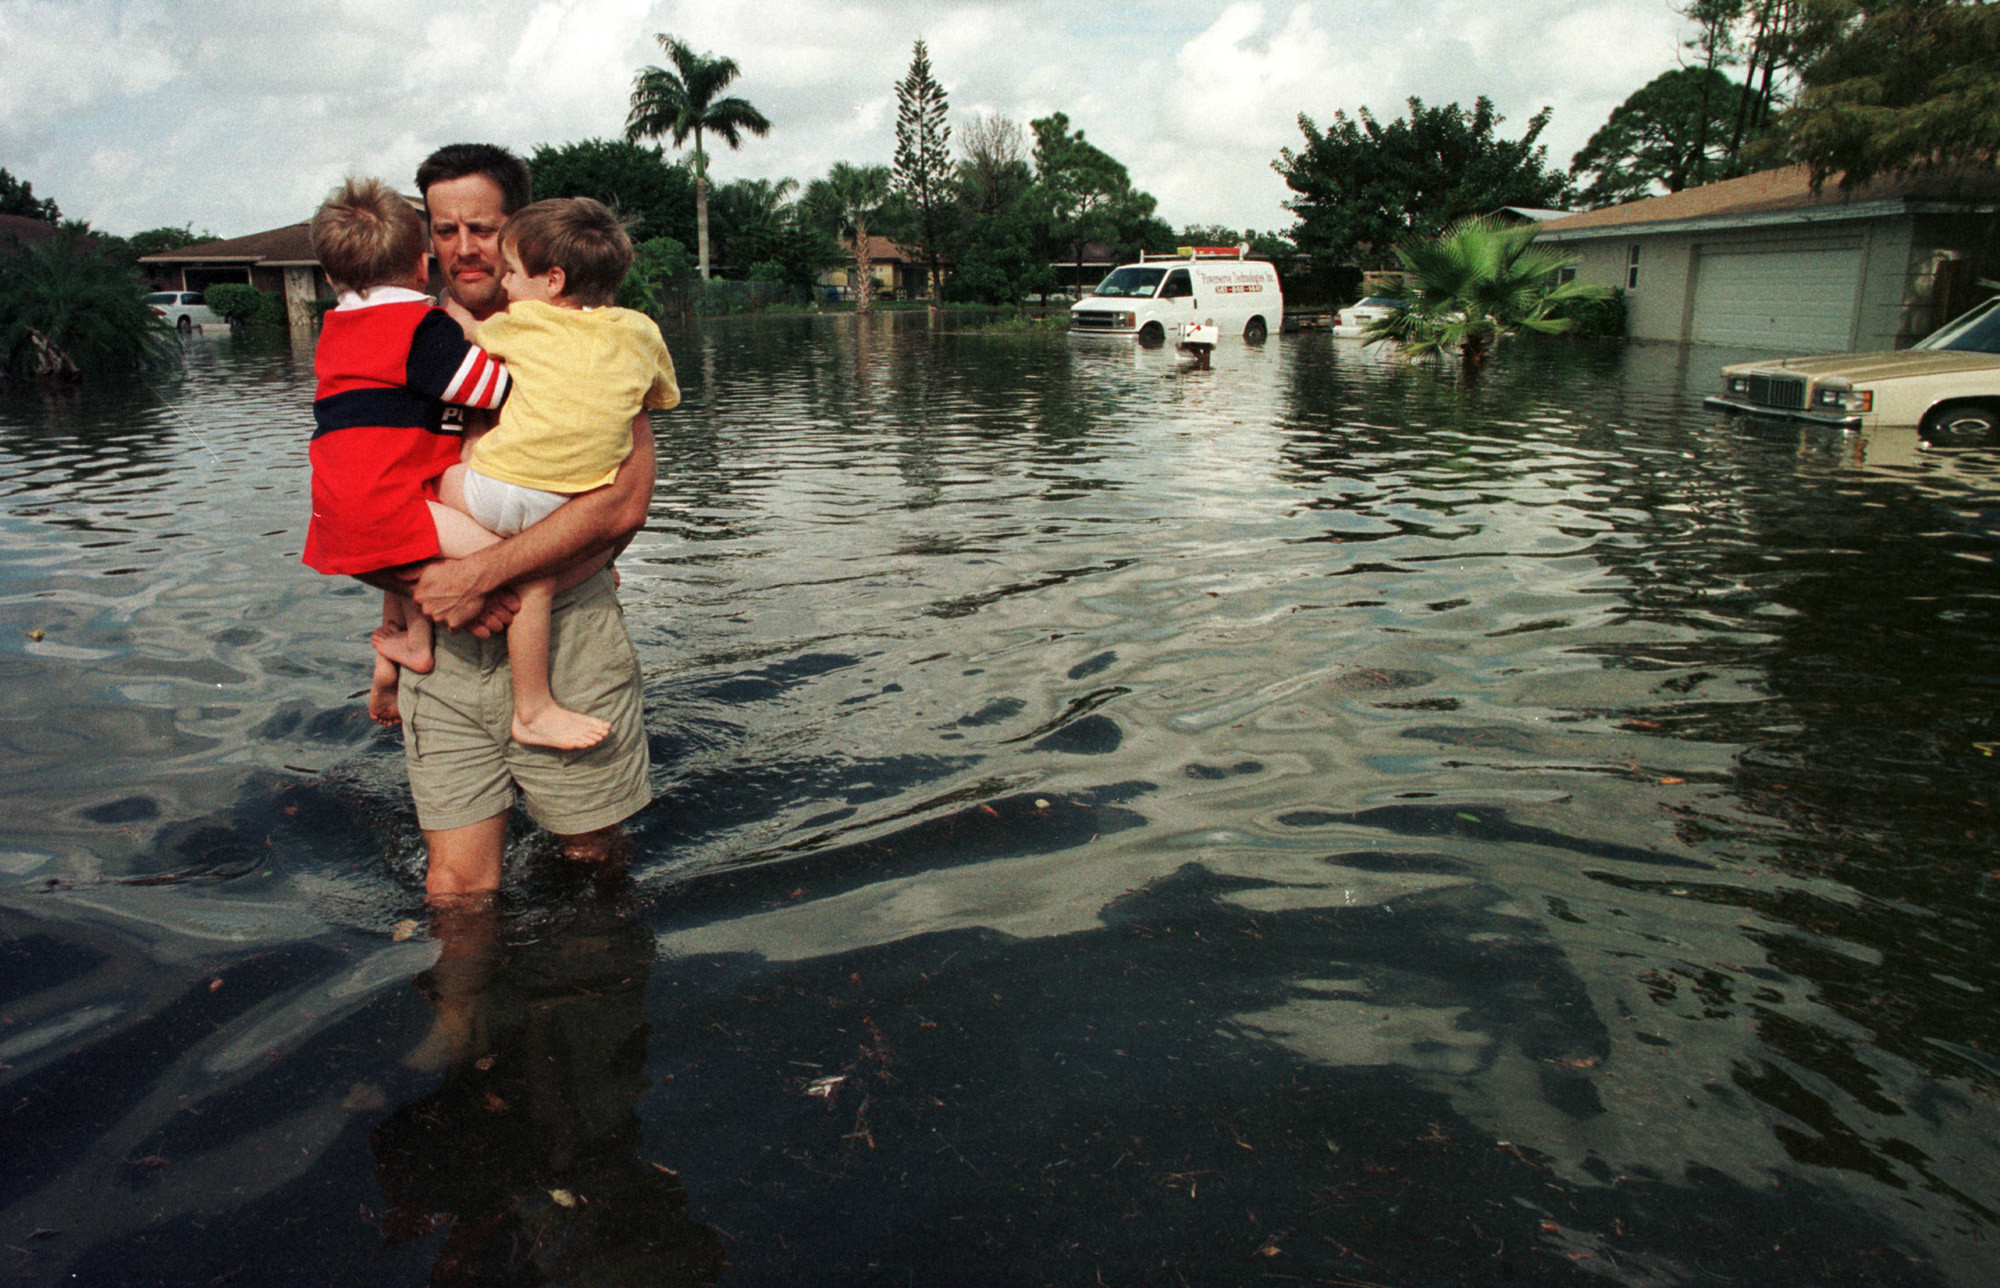 Private Flood Insurance Offerings Grow But Not For Cheap